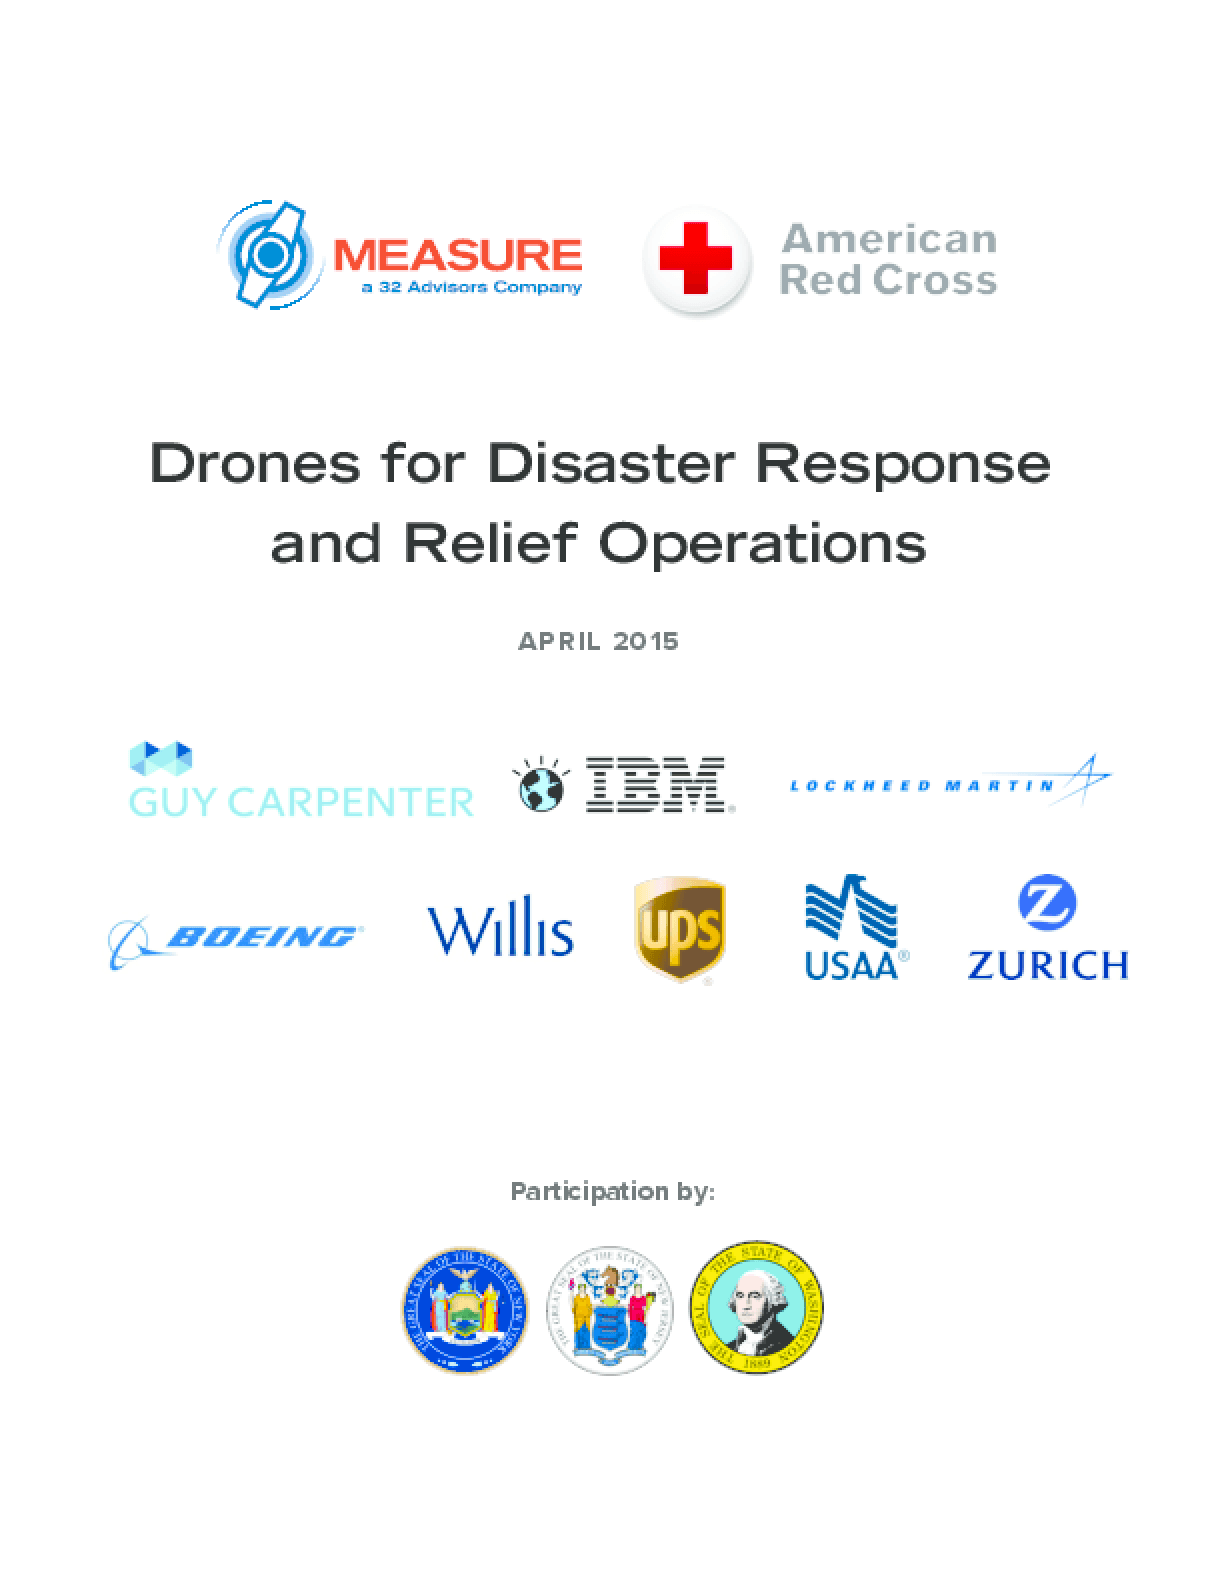 Drones for Disaster Response and Relief Operations